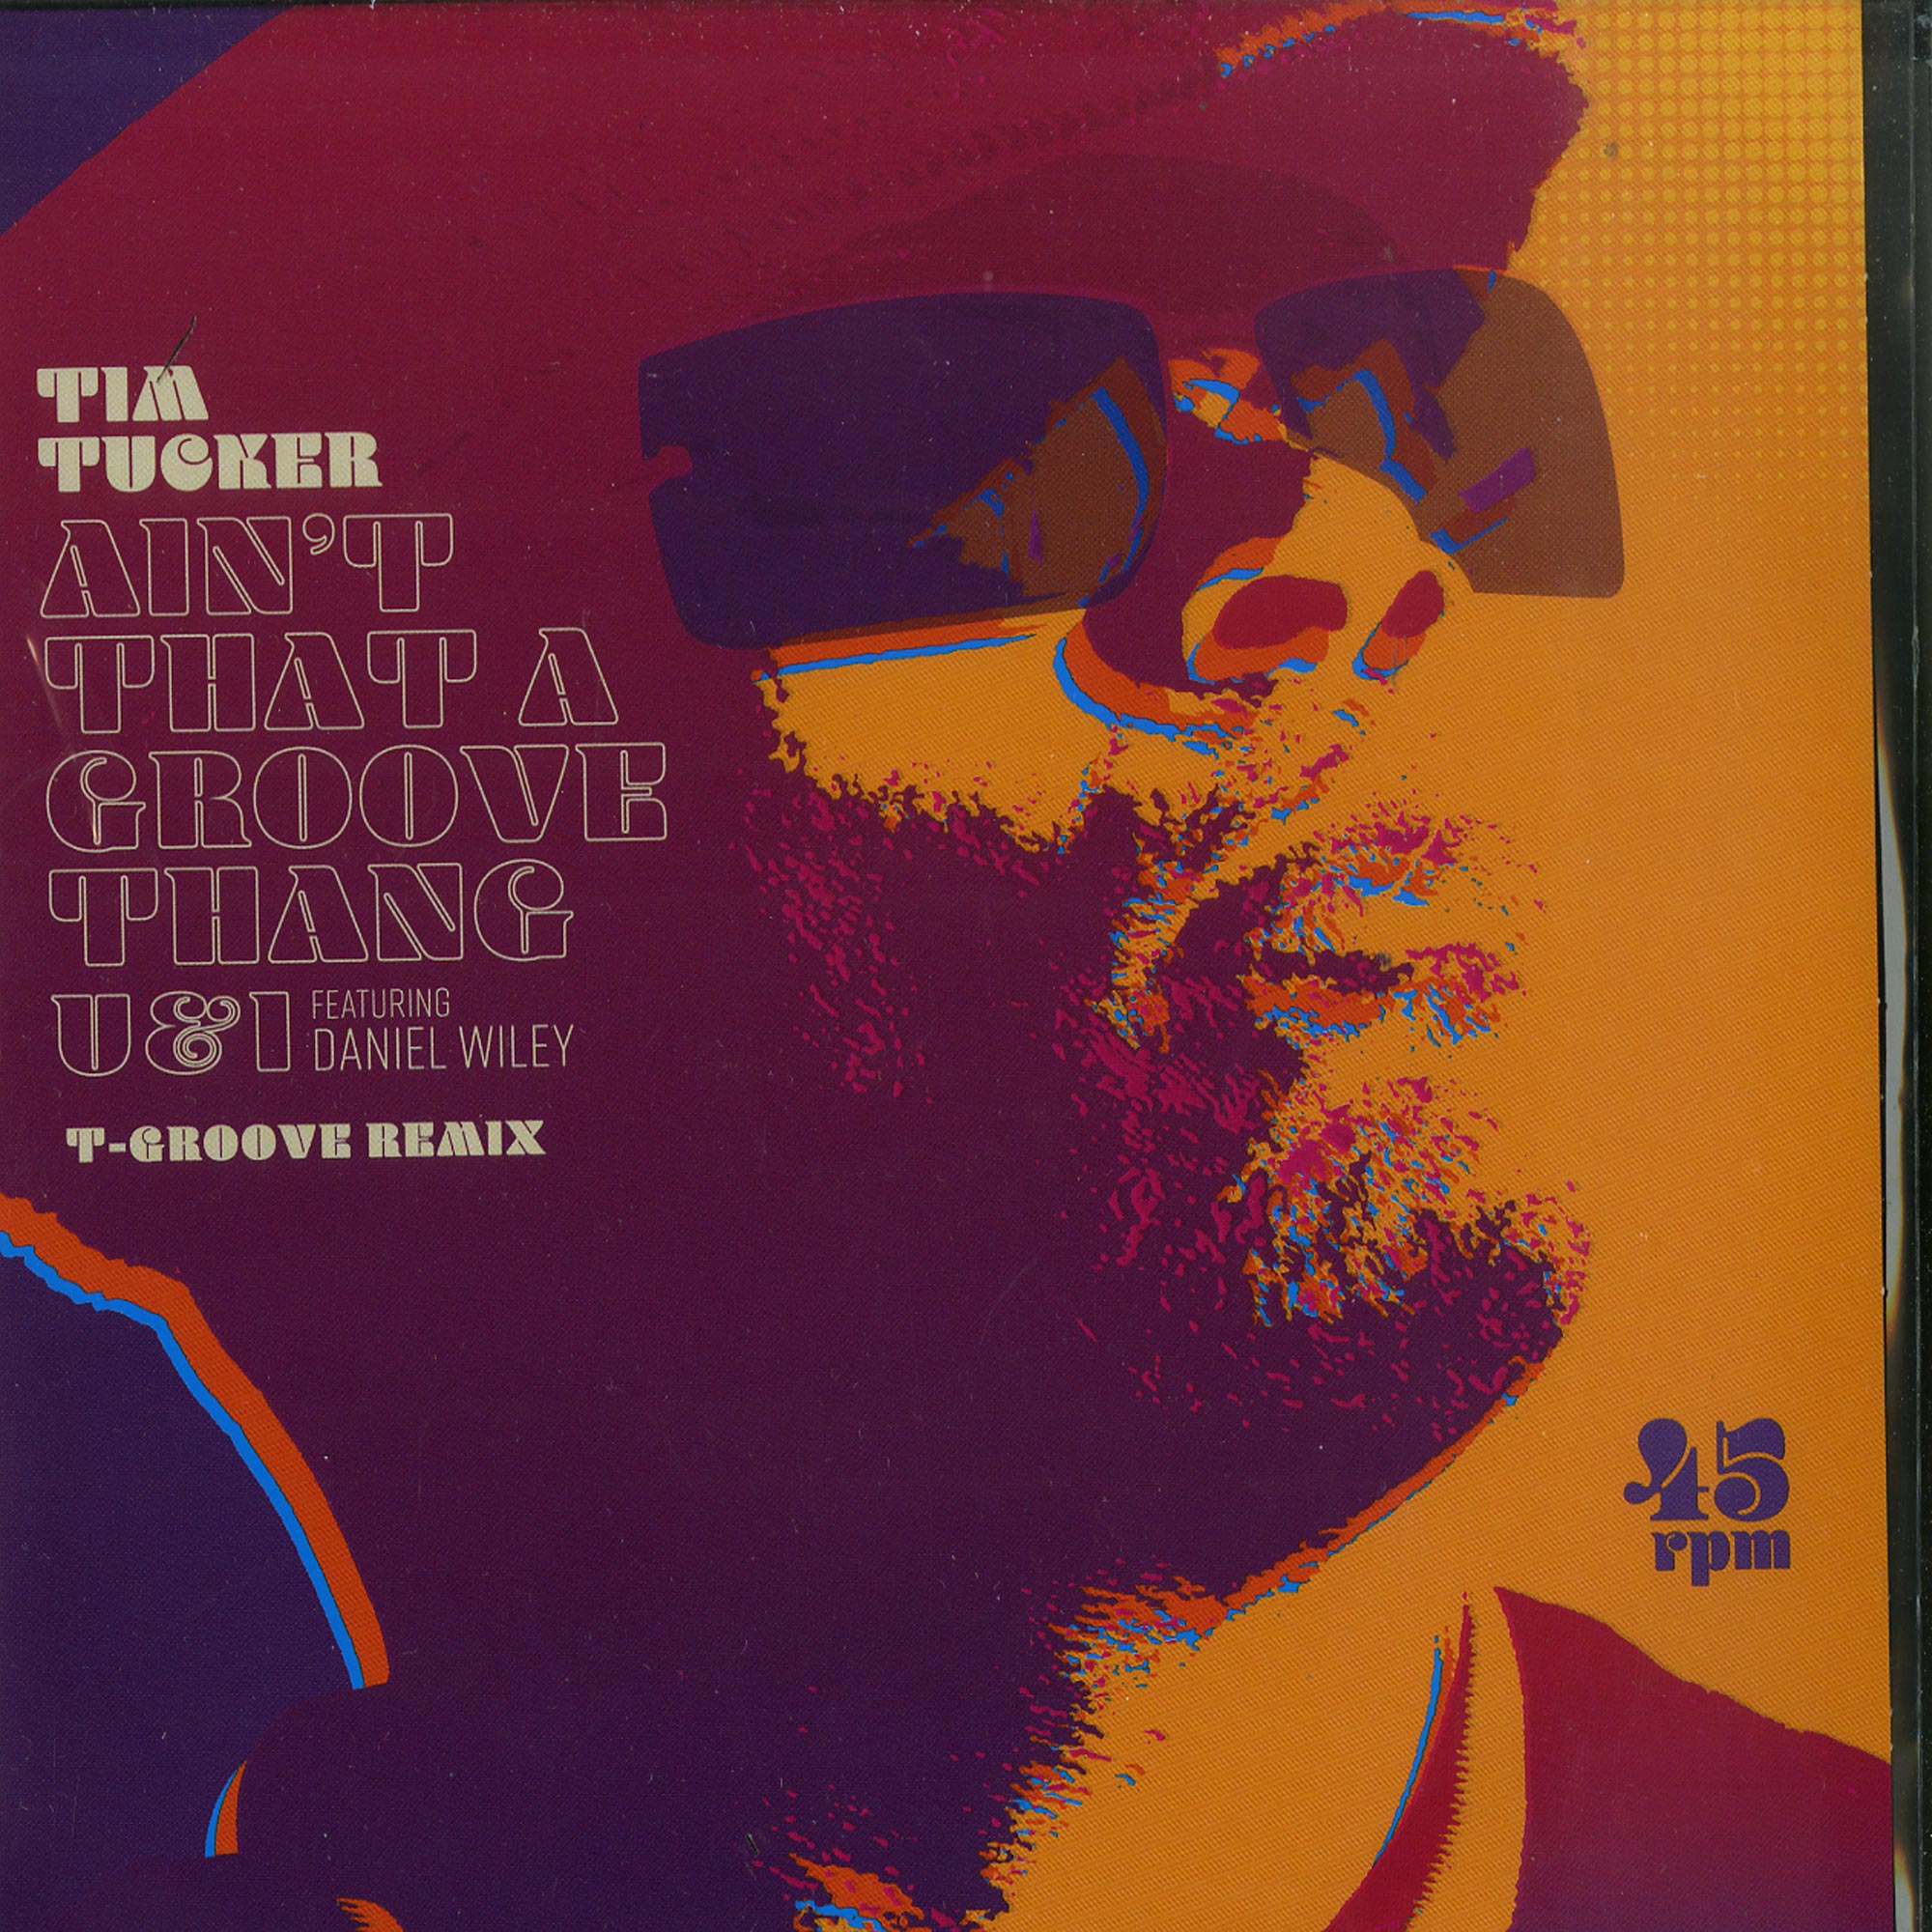 Tim Tucker - AINT THAT A GROOVE THANG